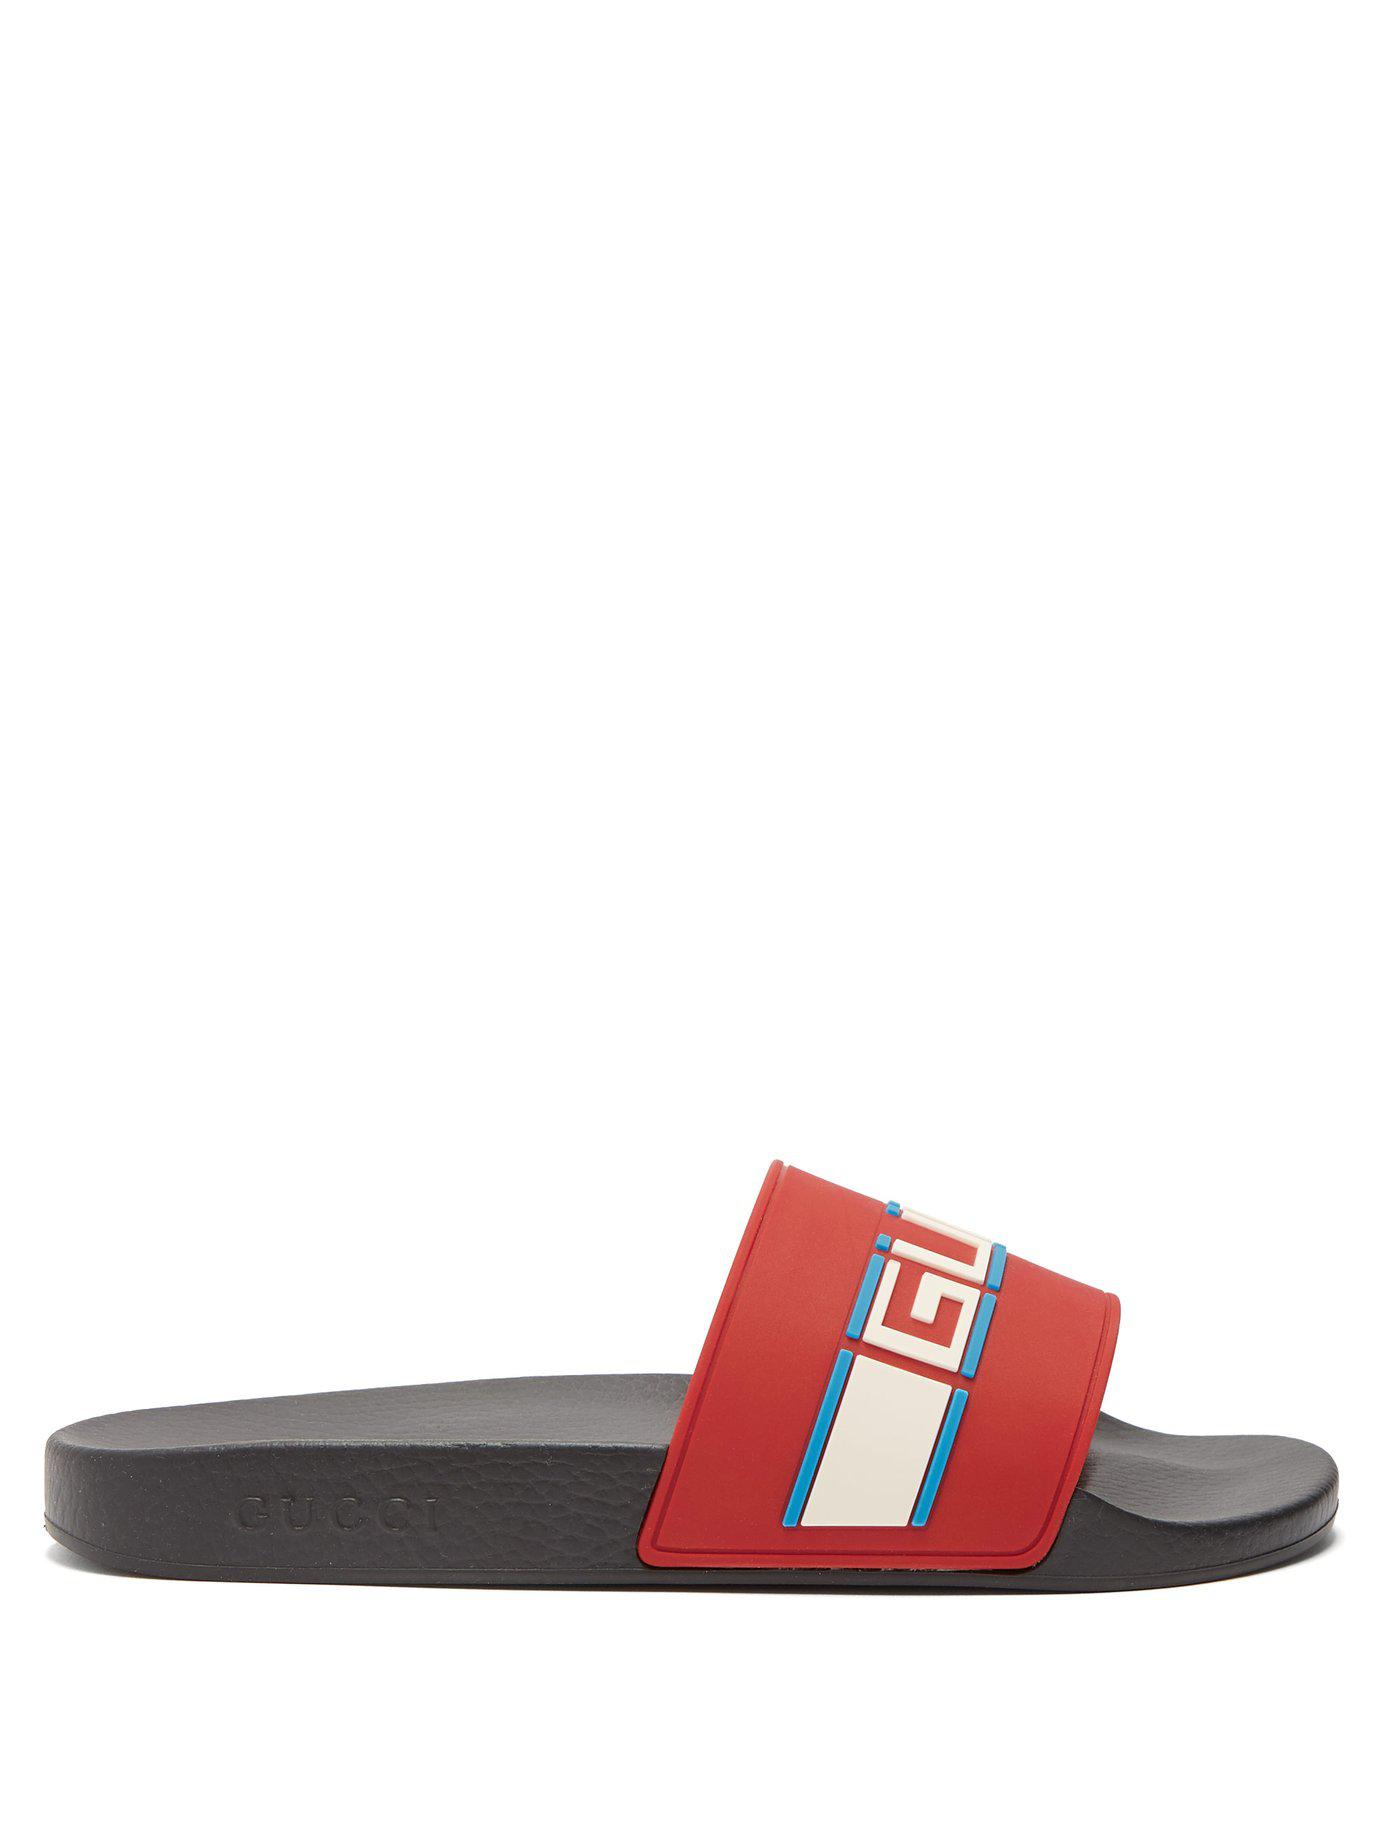 76fdd171ef45f Lyst - Gucci Pursuit Stripe Logo Sliders in Red for Men - Save 27%